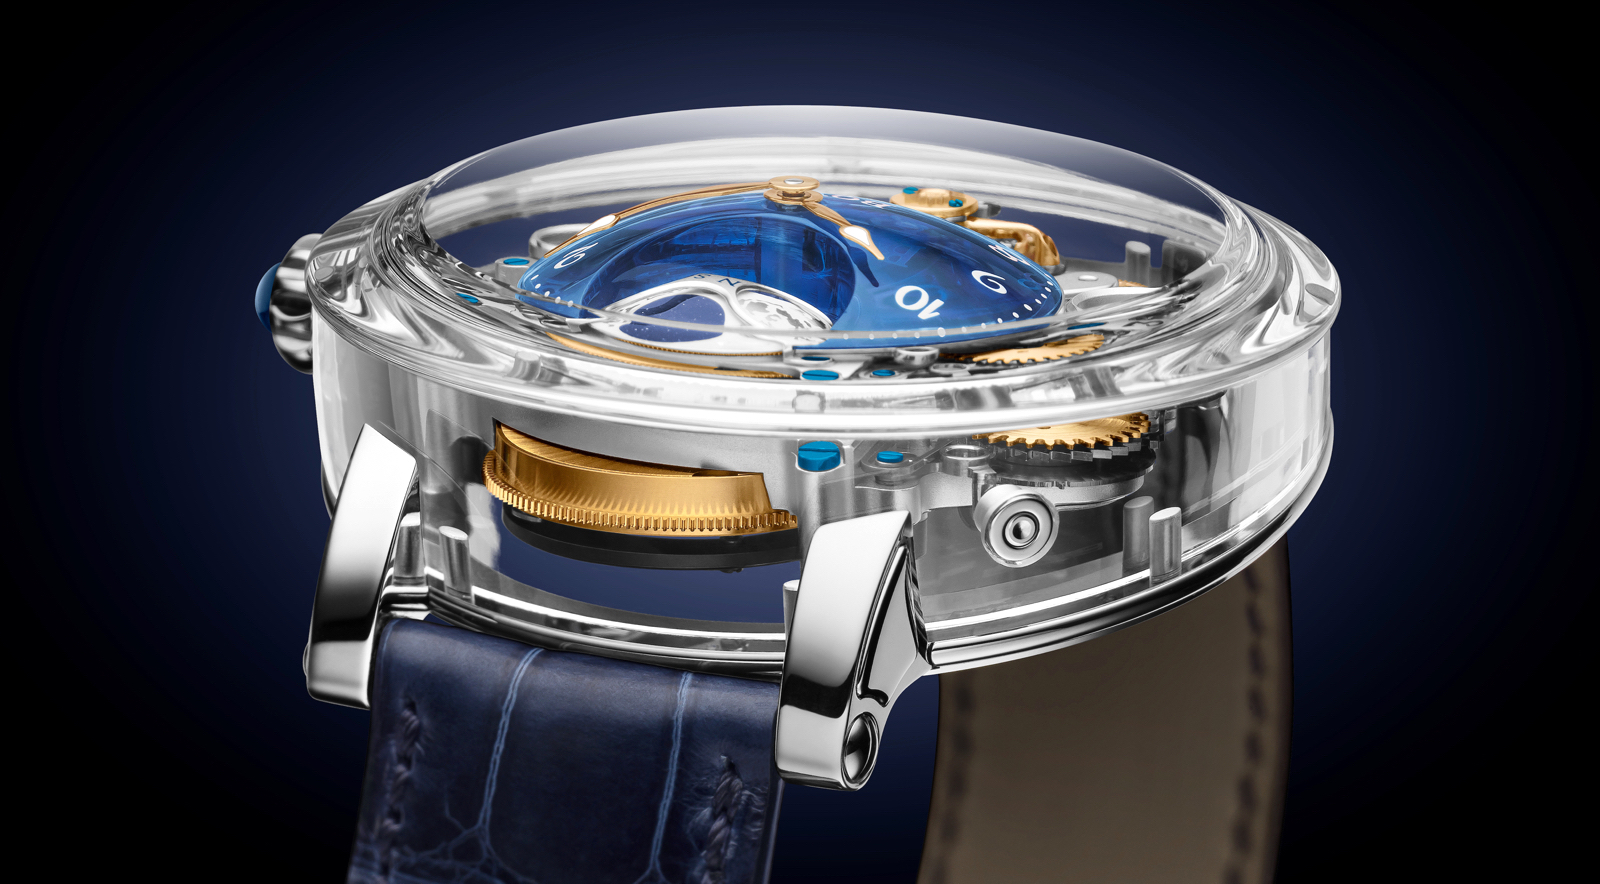 Bovet Récital 26 Brainstorm Chapter One Lateral